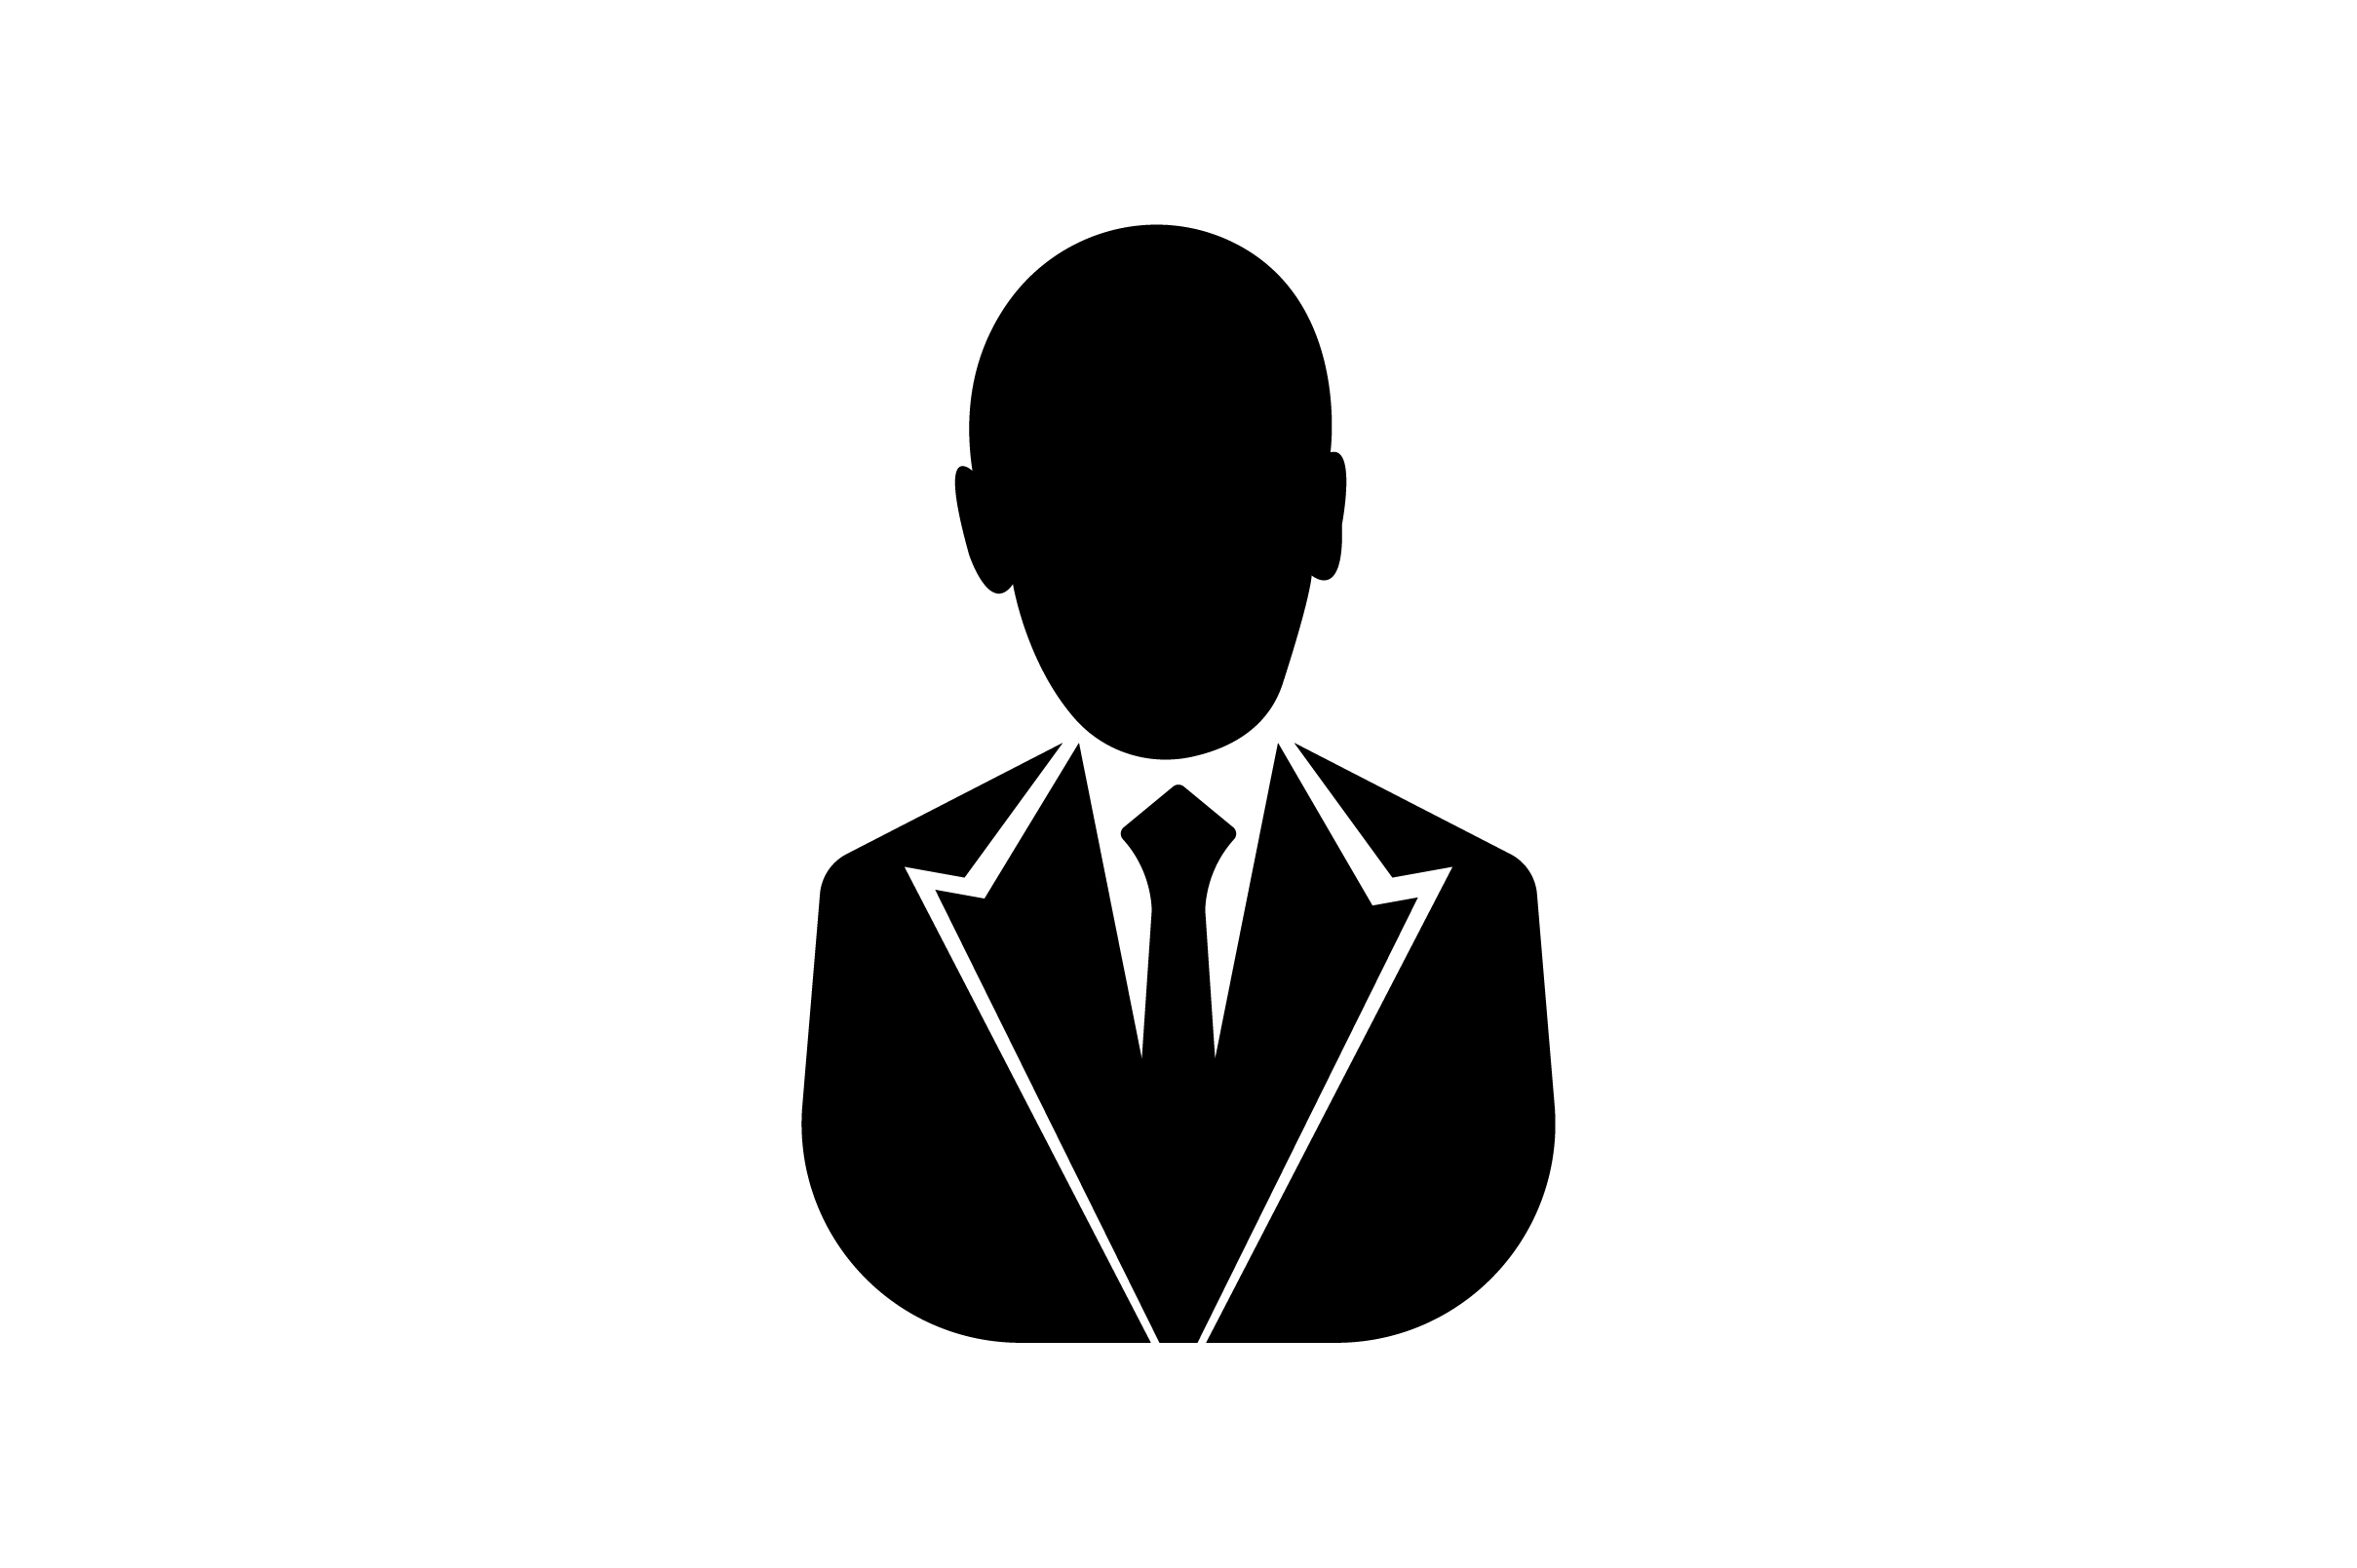 Download Free Business Male Icon Graphic By Riduwan Molla Creative Fabrica for Cricut Explore, Silhouette and other cutting machines.